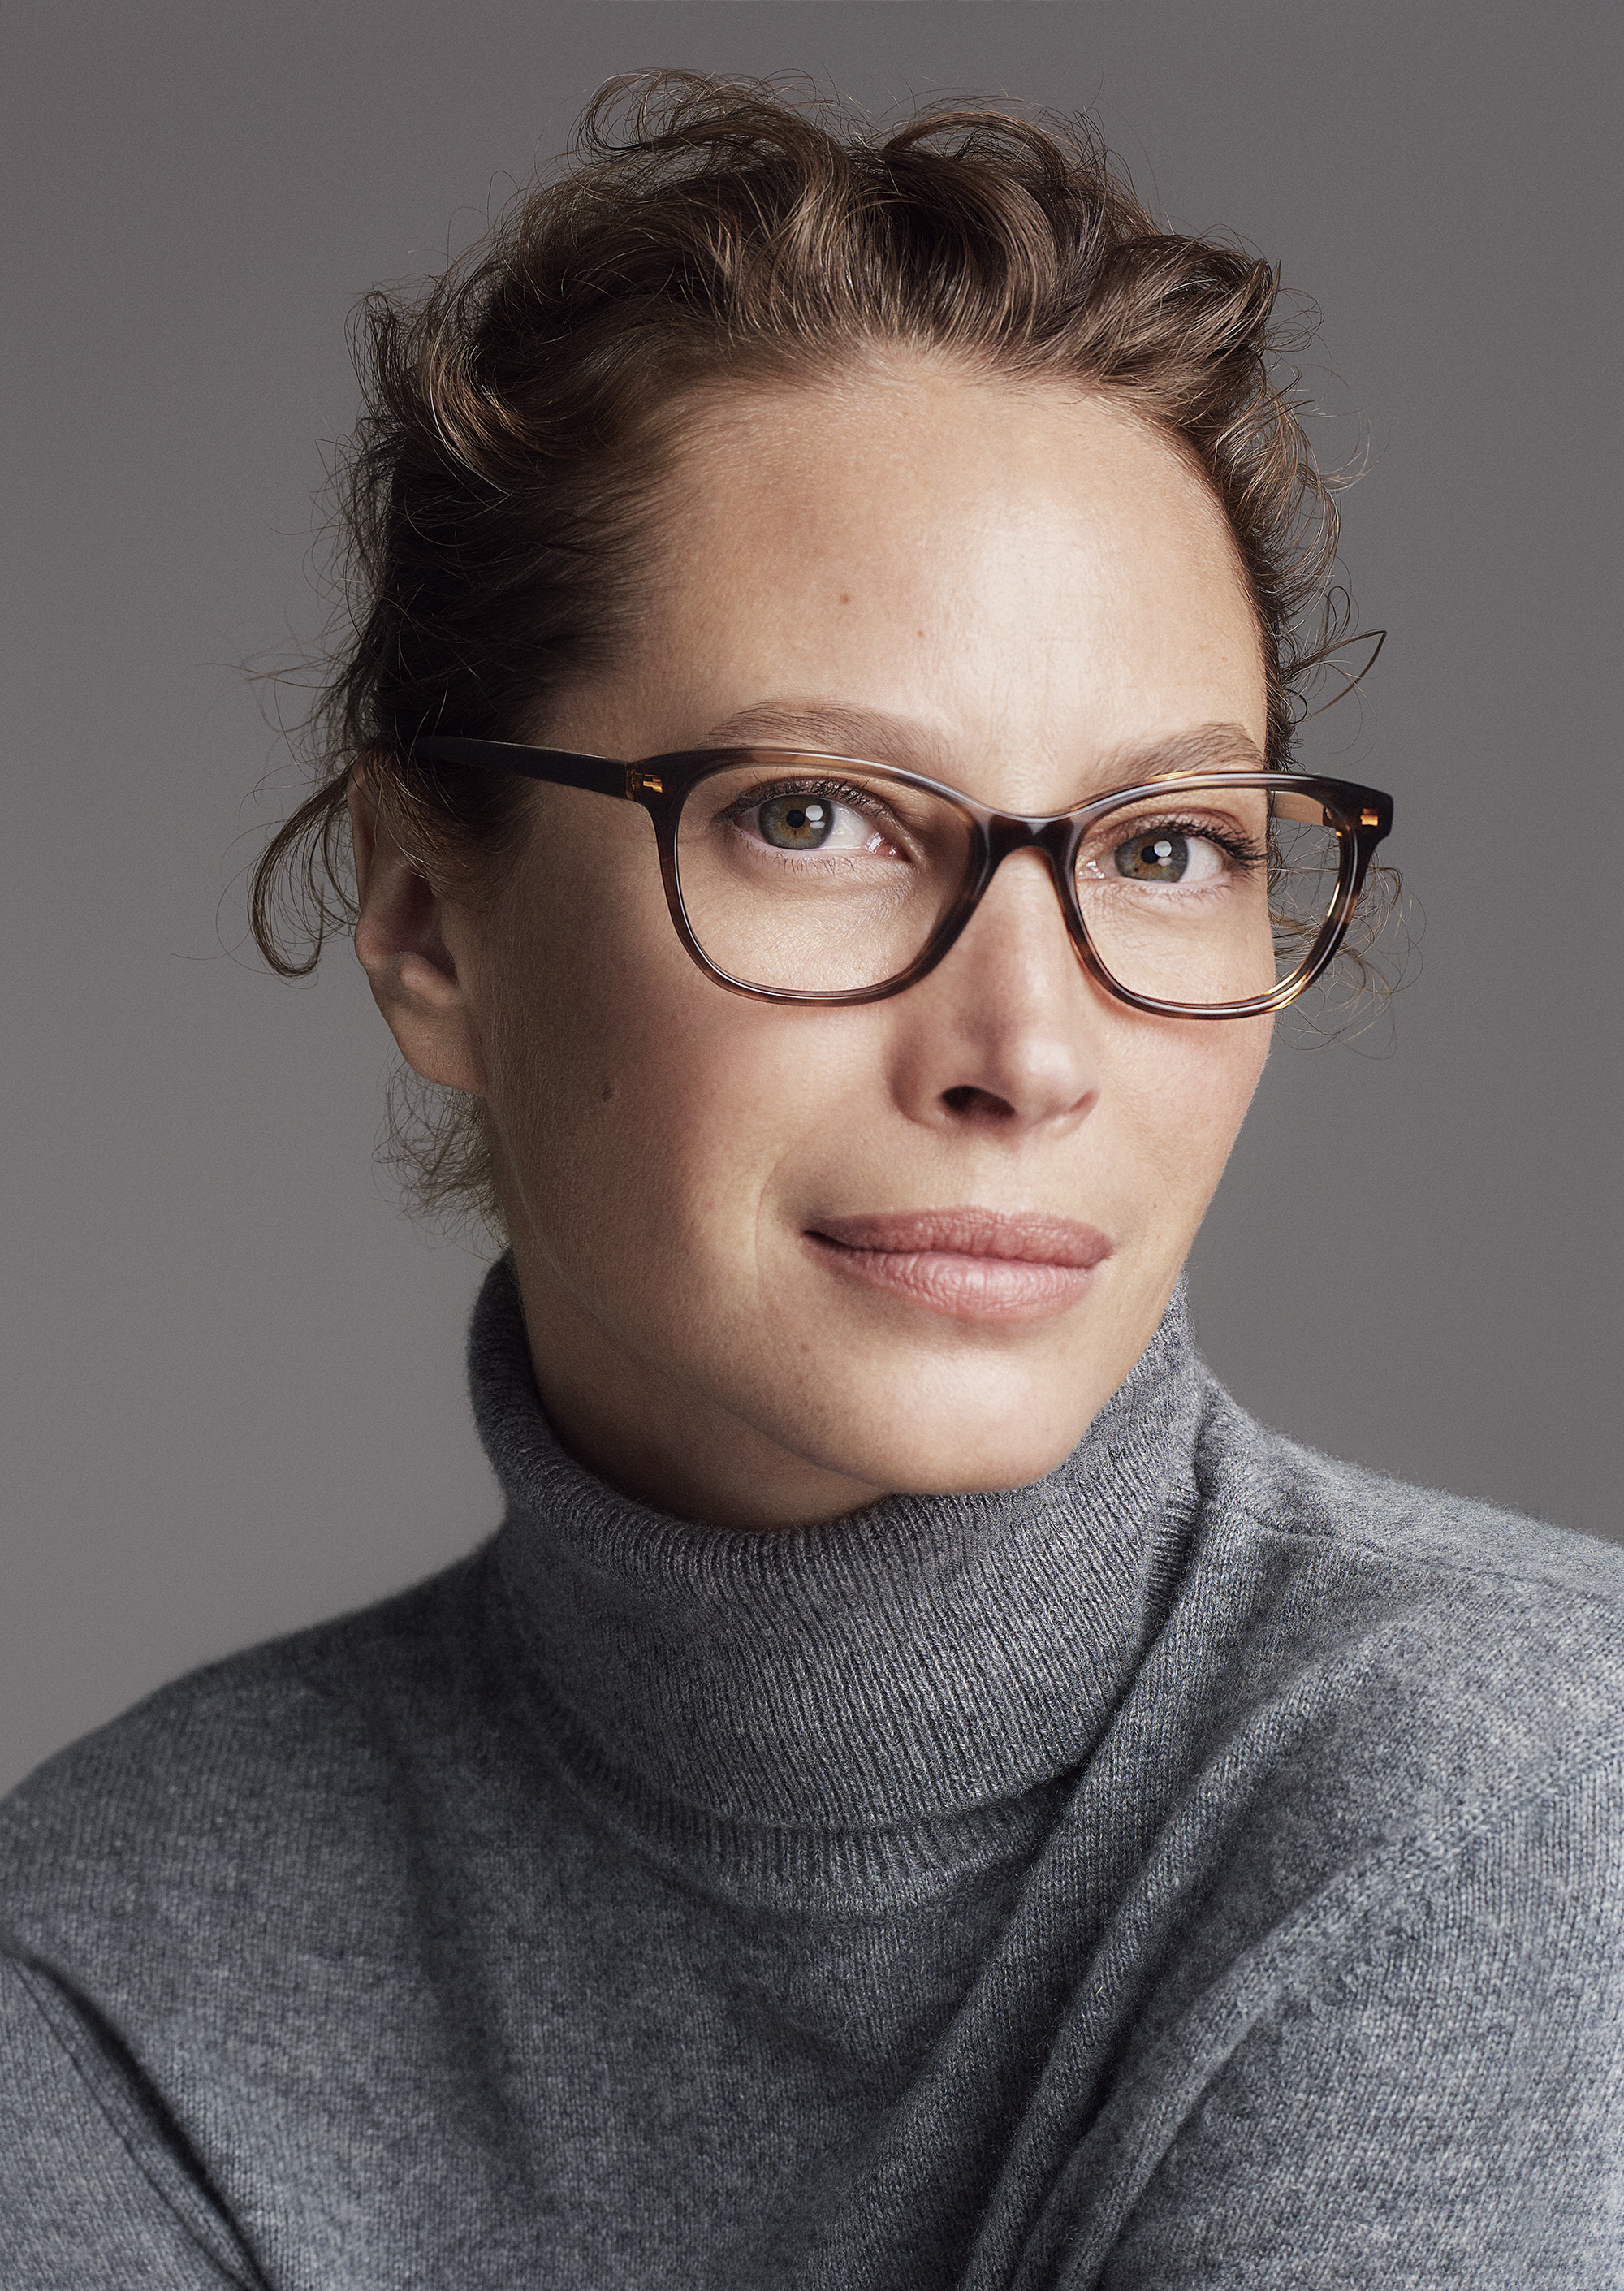 Cole Haan_Fall 2017 Extraordinary Women, Extraordinary Stories Campaign_Christy Turlington Burns in Studi++Grand Optican Frames in Brown Horn